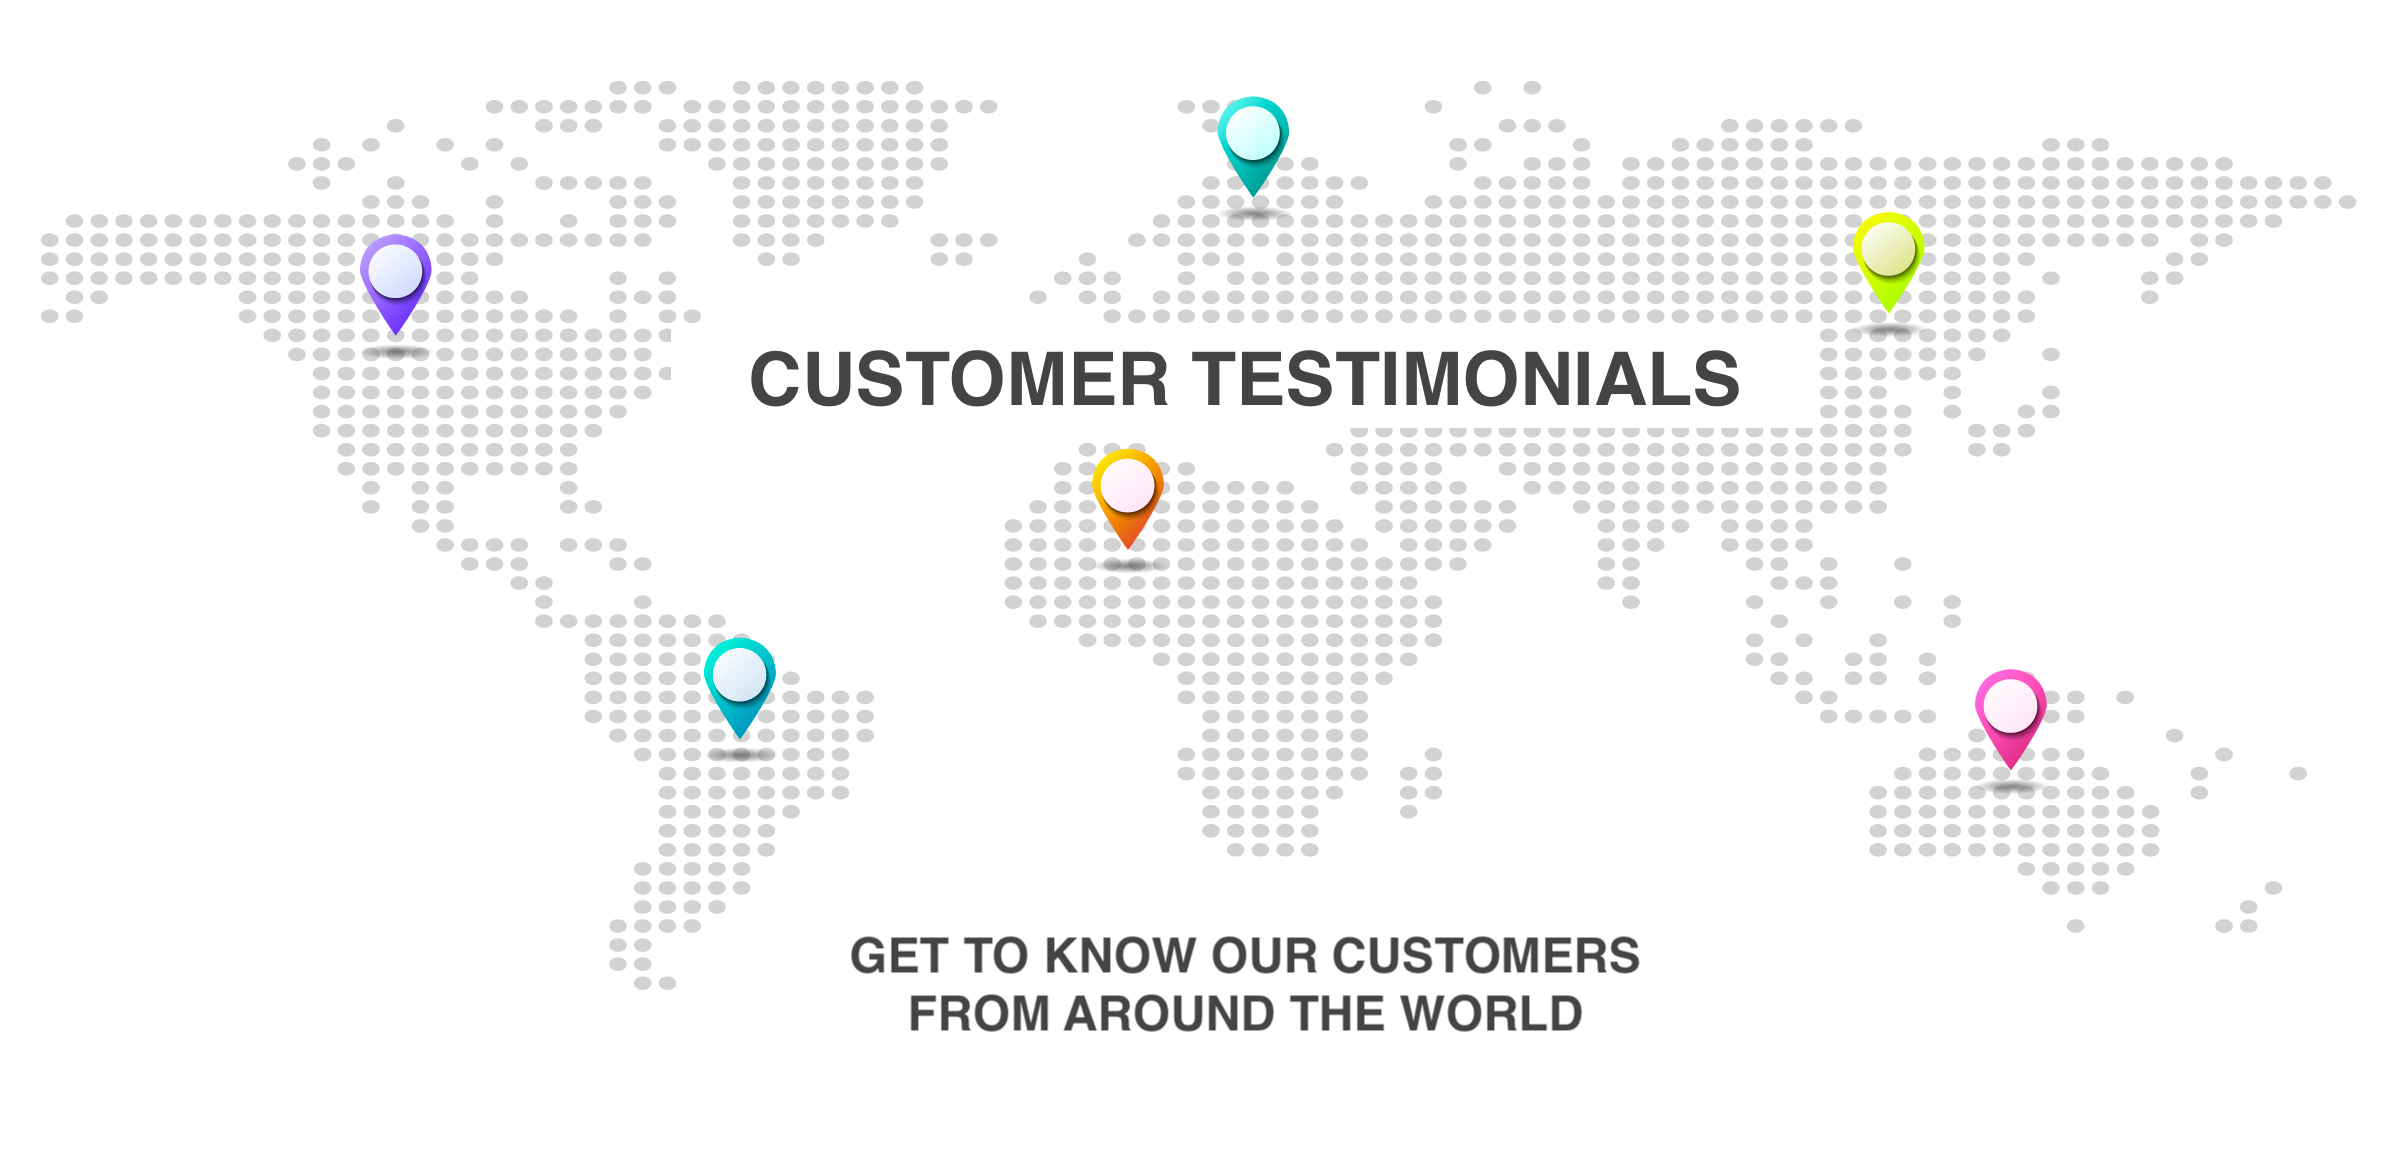 CUSTOMER TESTIMONIALS - get to know our customers from around the world